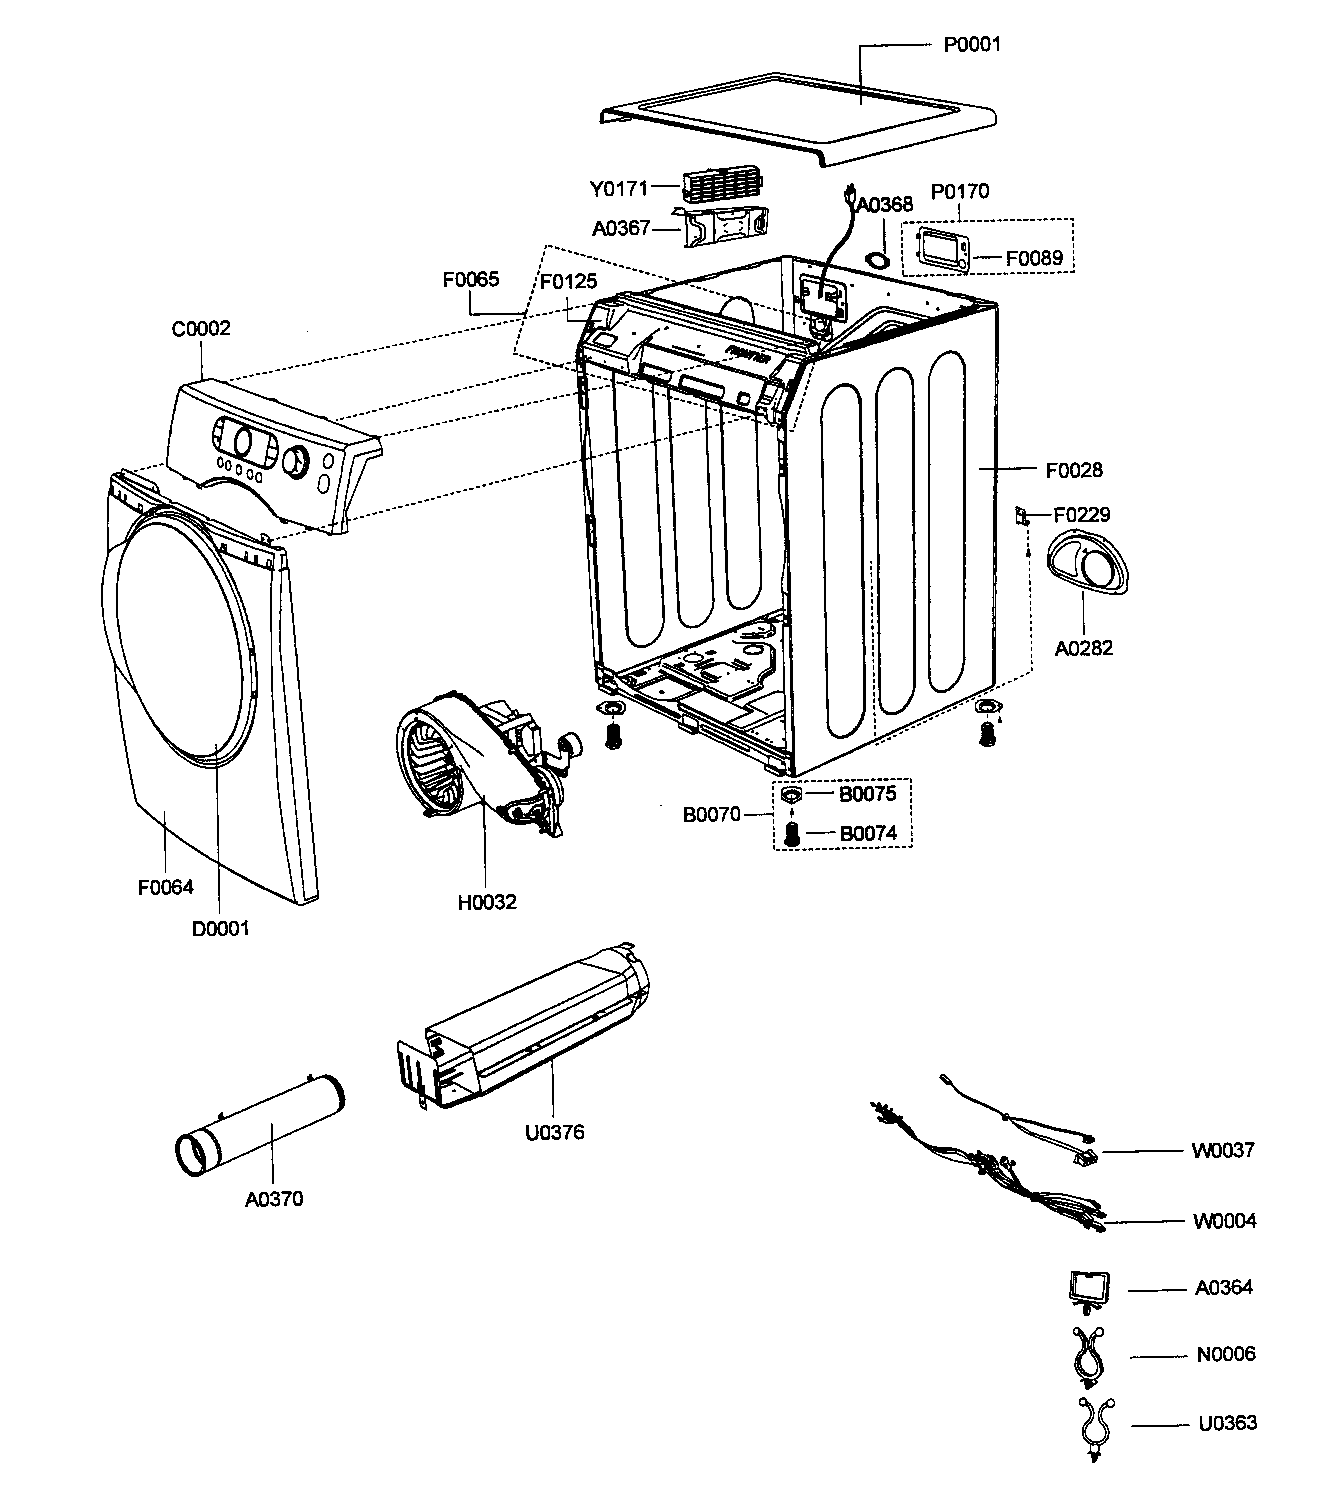 hight resolution of samsung dryer heating element